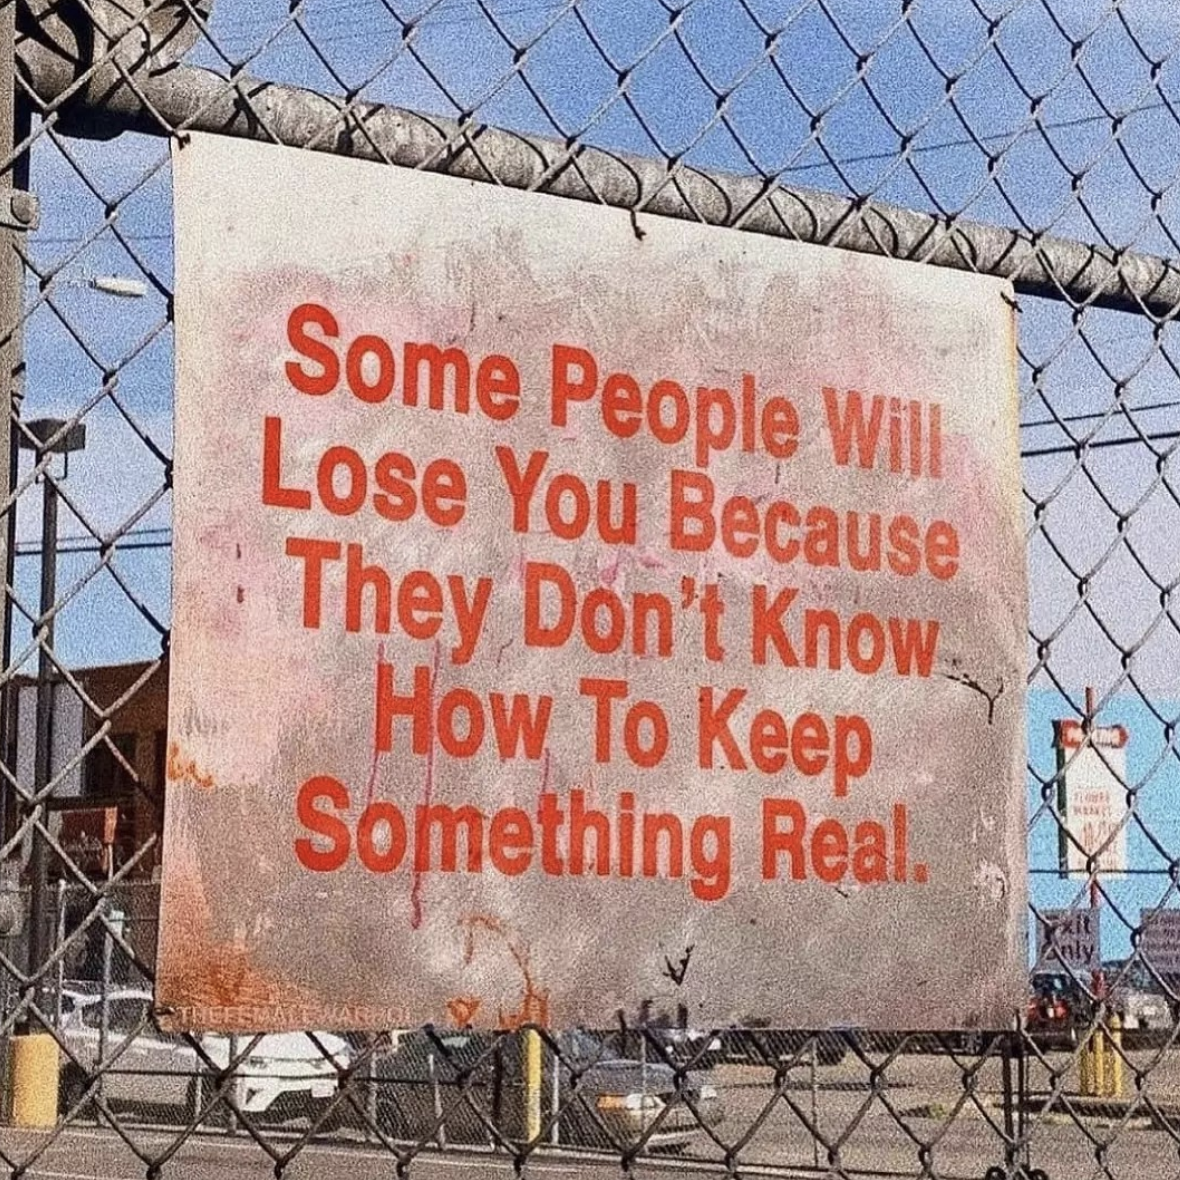 [Image] Some people will lose you because they don't know how to keep something real. Always be real.